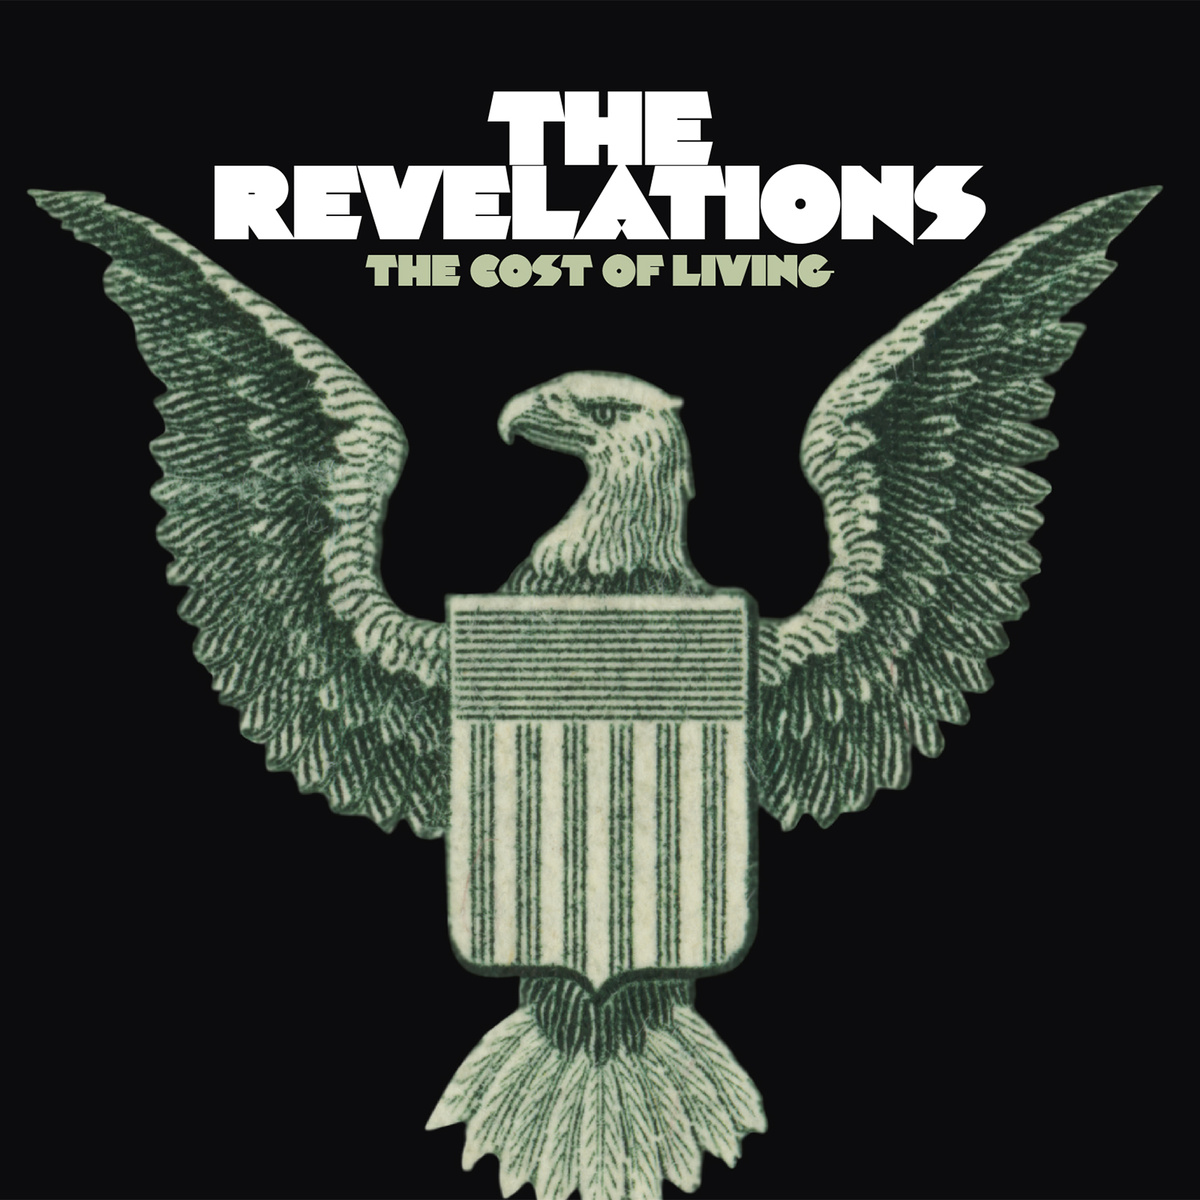 The Revelations The Cost of Living The Revelations featuring Rell Release New Album The Cost of Living Today